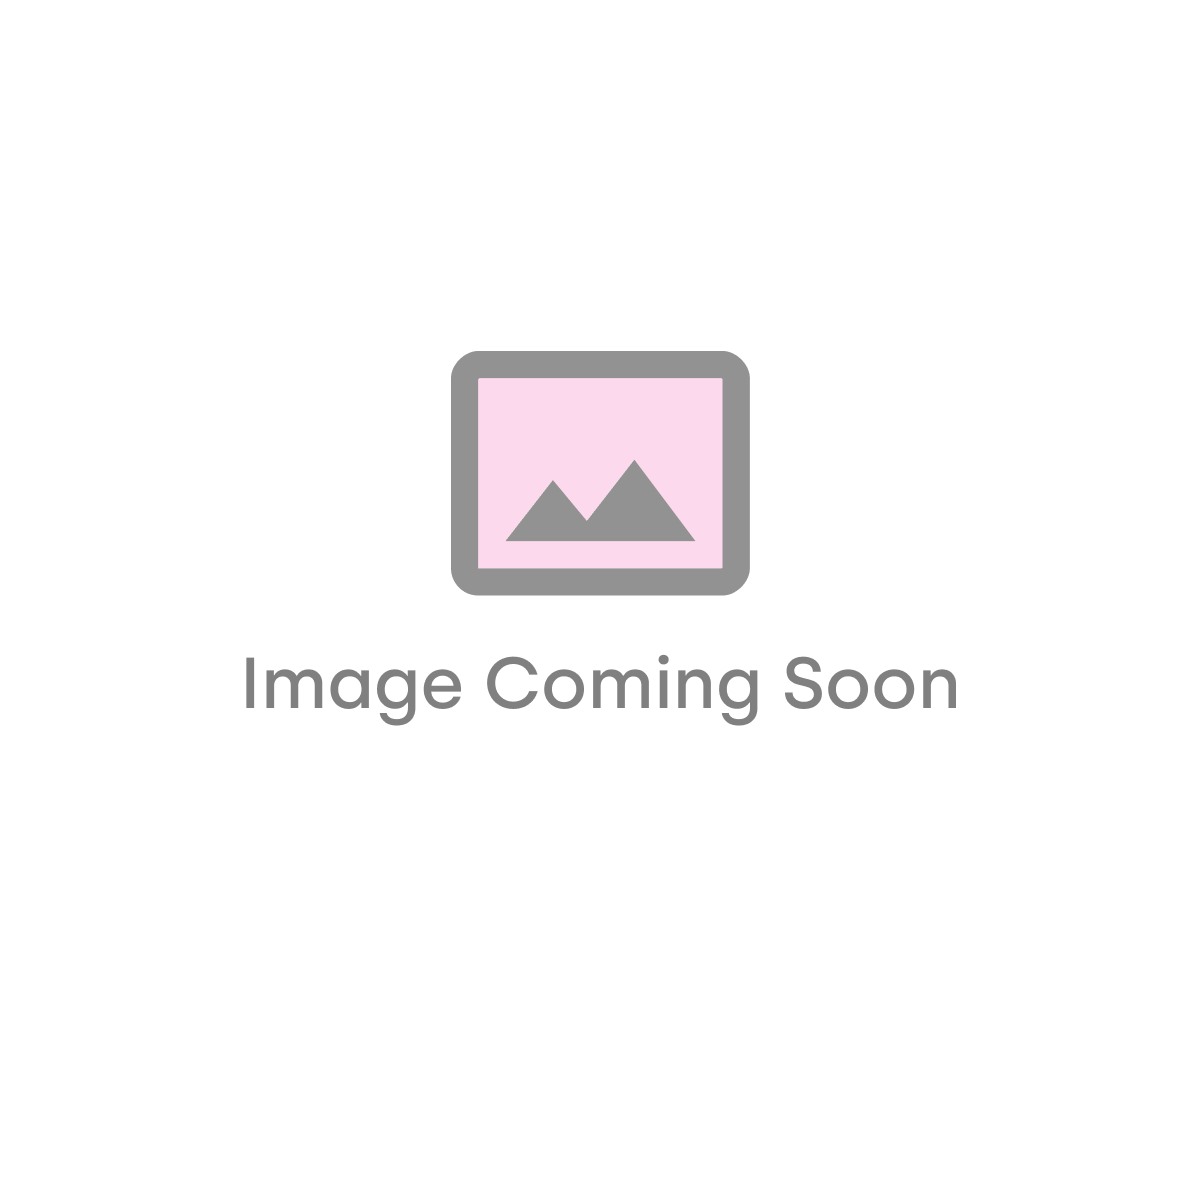 Insignia 1700 x 900mm Steam Shower Enclosure INS8059R - Right Hand (9128)